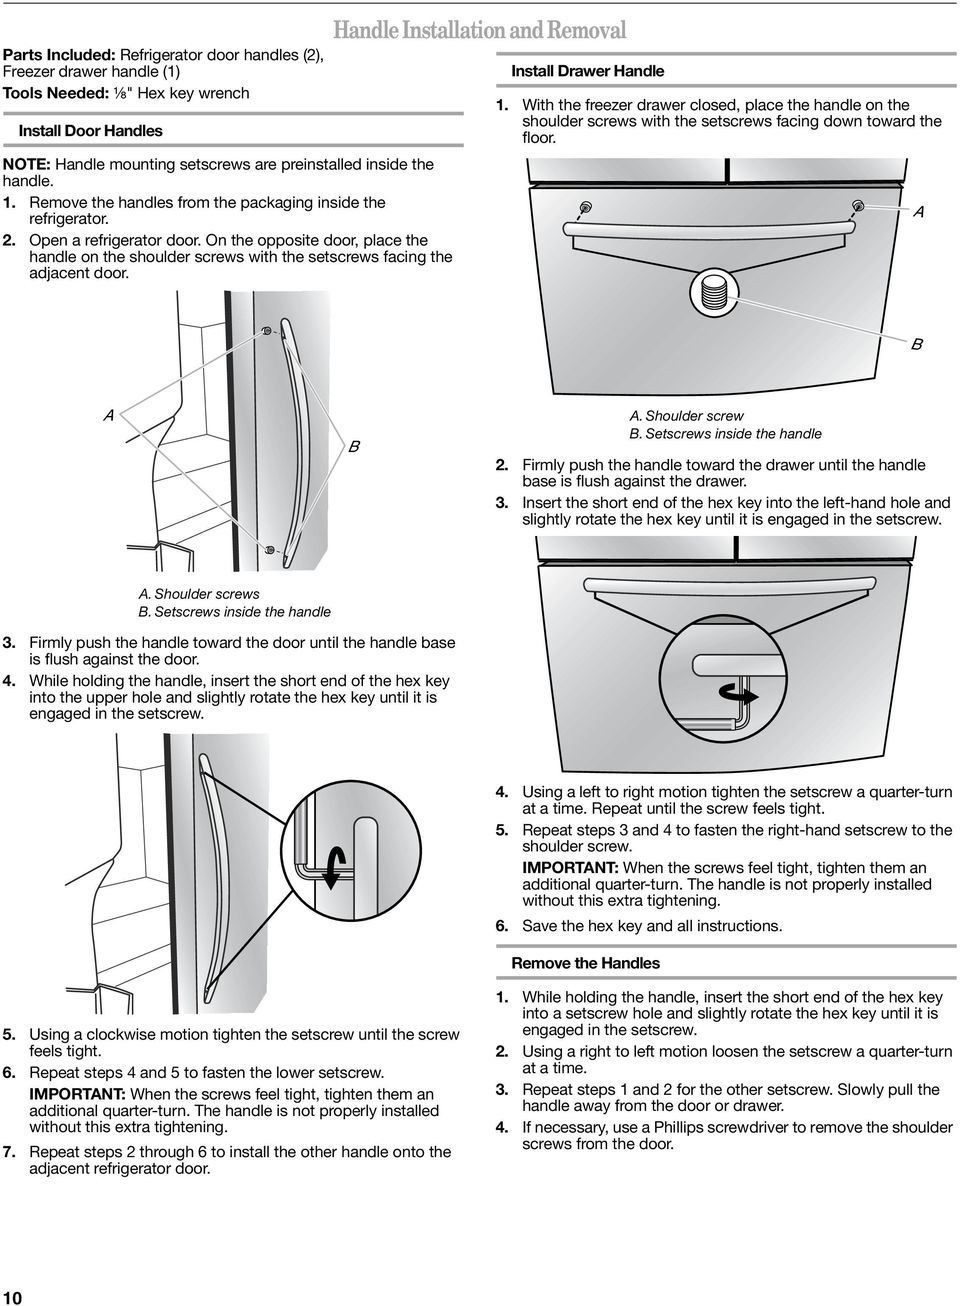 Handle Installation and Removal Install Drawer Handle 1. With the freezer drawer closed, place the handle on the shoulder screws with the setscrews facing down toward the floor. B B. Shoulder screw B.